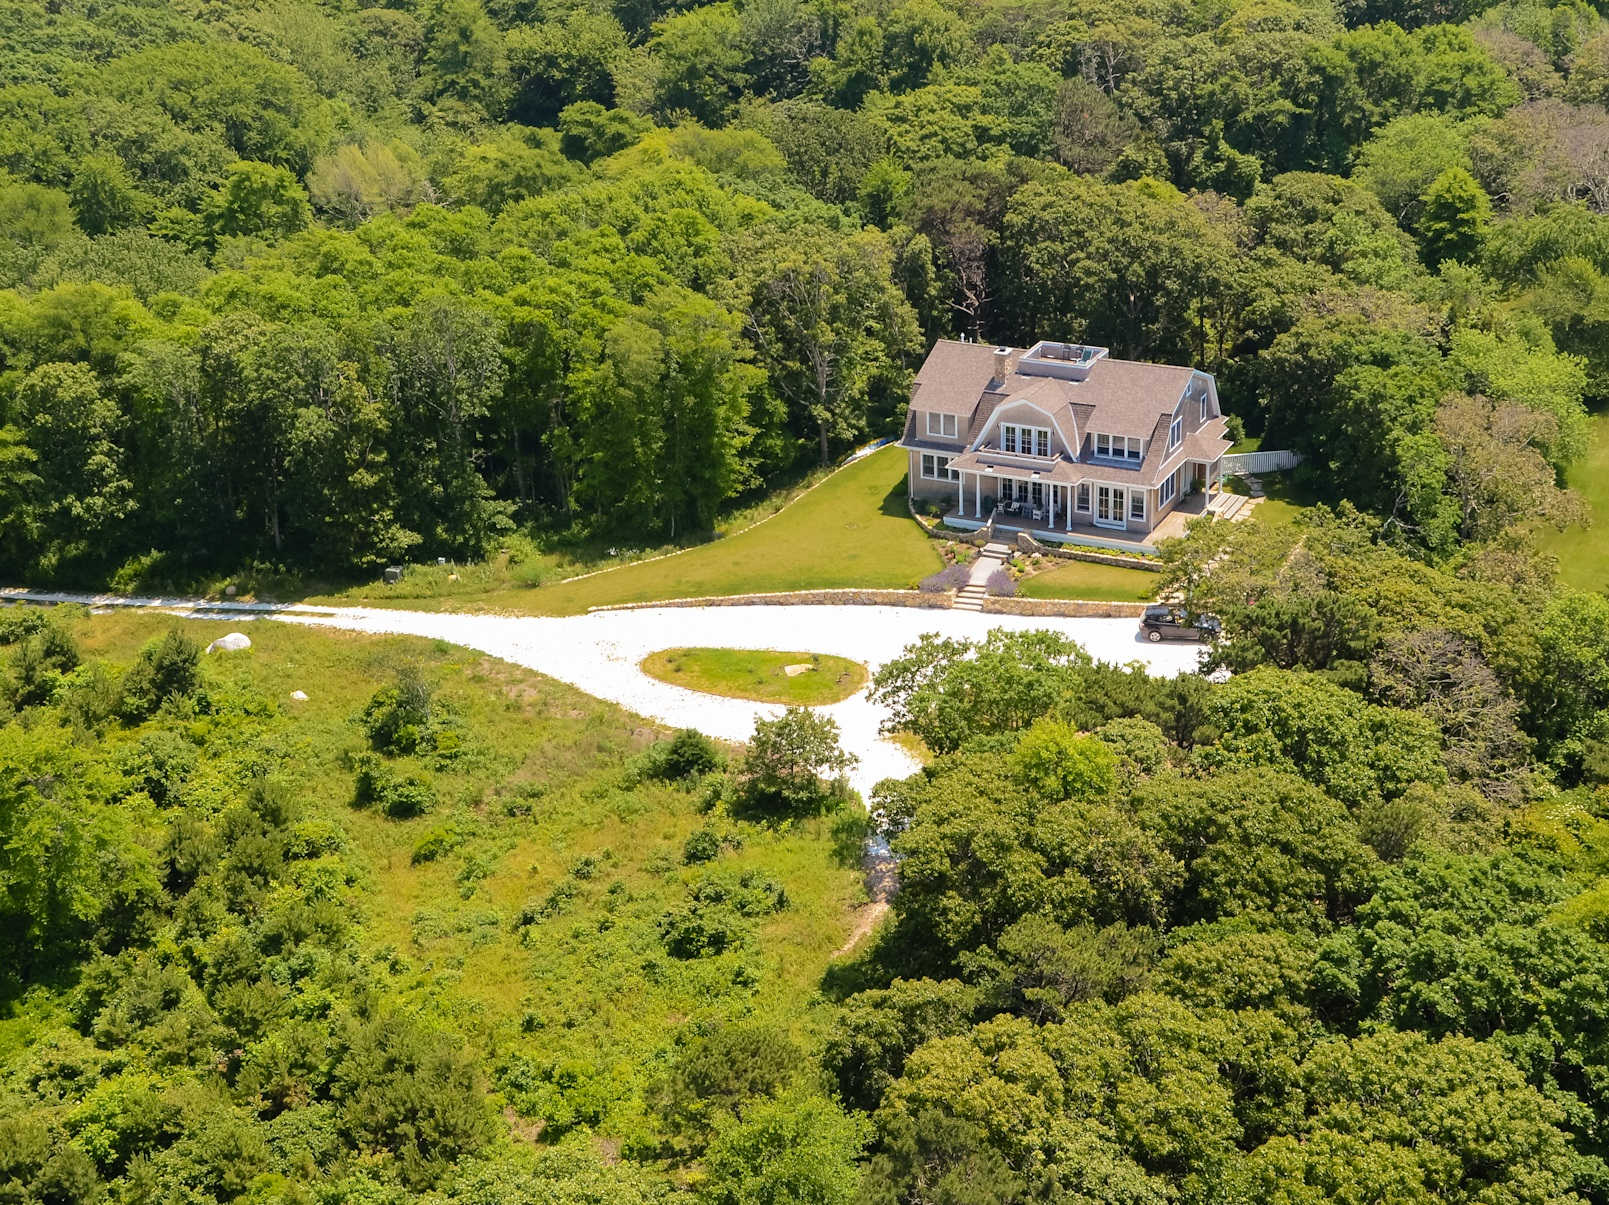 Single Family Home for Sale at 8.6 Acre Estate with Private Association Beaches 94 Norton Farm Road West Tisbury, Massachusetts, 02575 United States